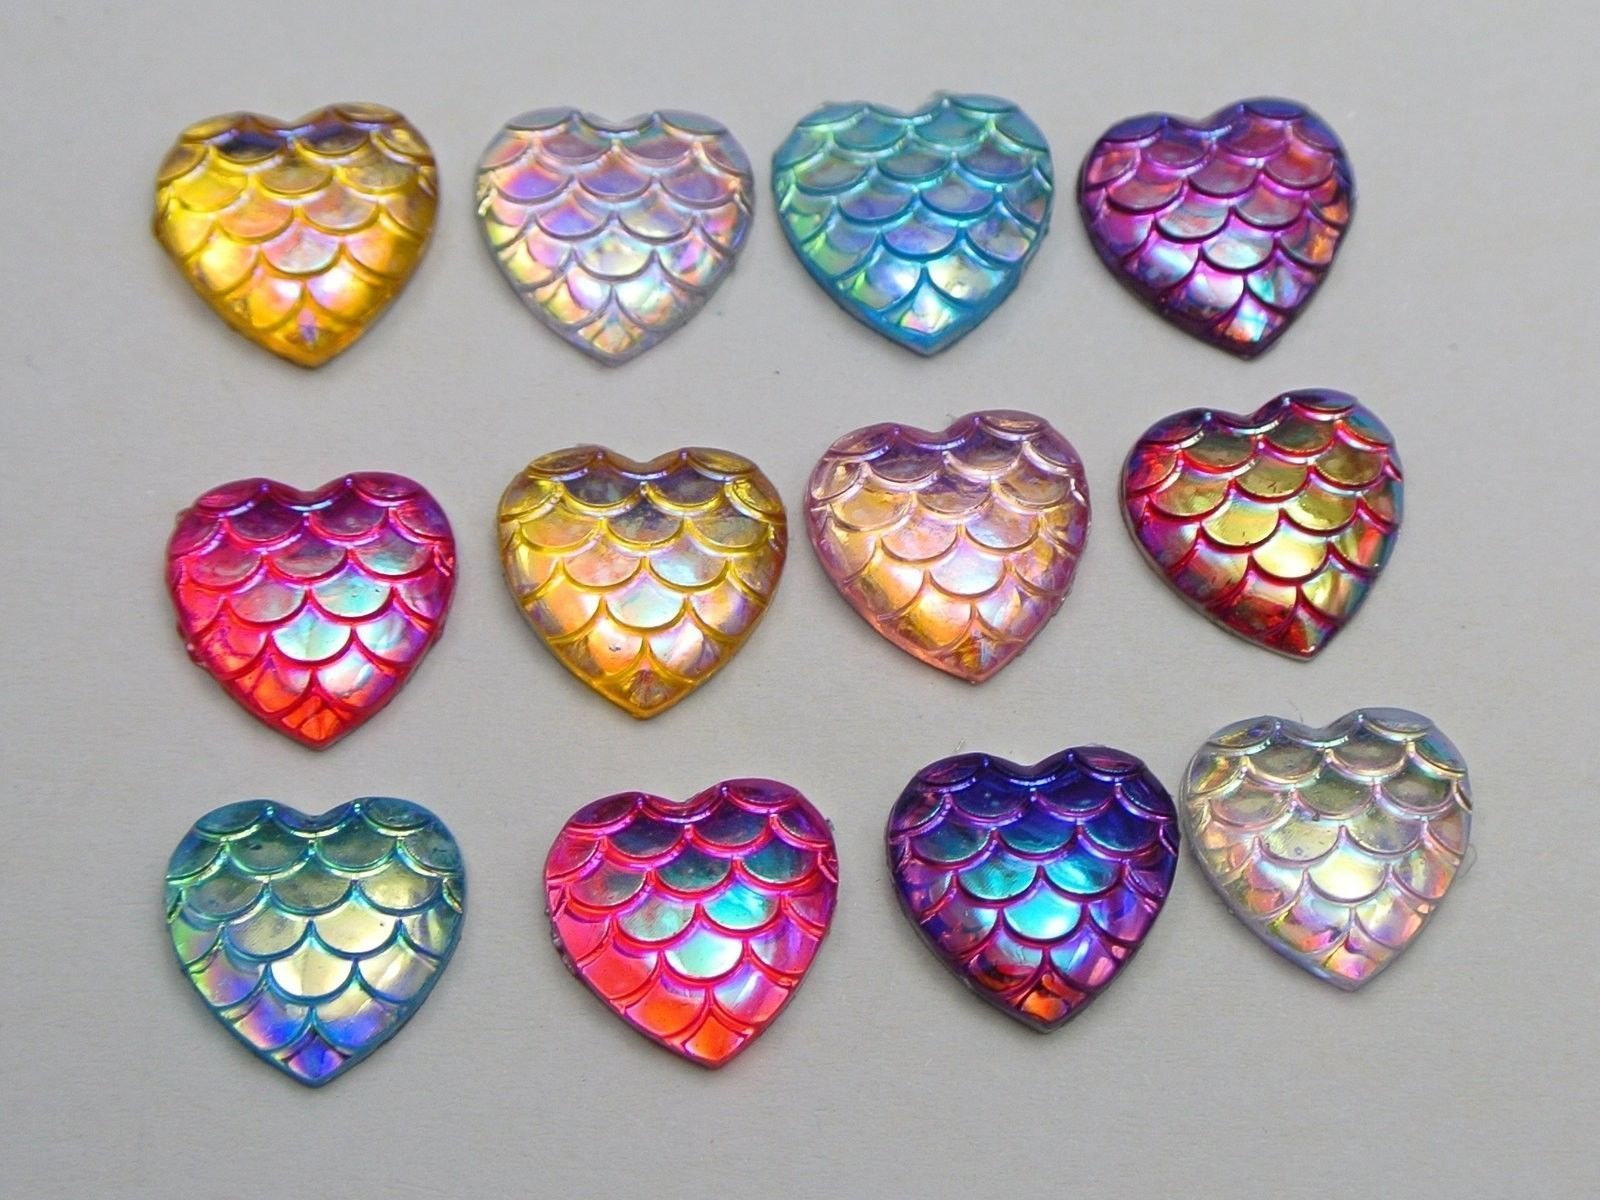 100 Pieces Flatback Round Resin Cabochons Mermaid Fish Scale Multi Color 12*3mm